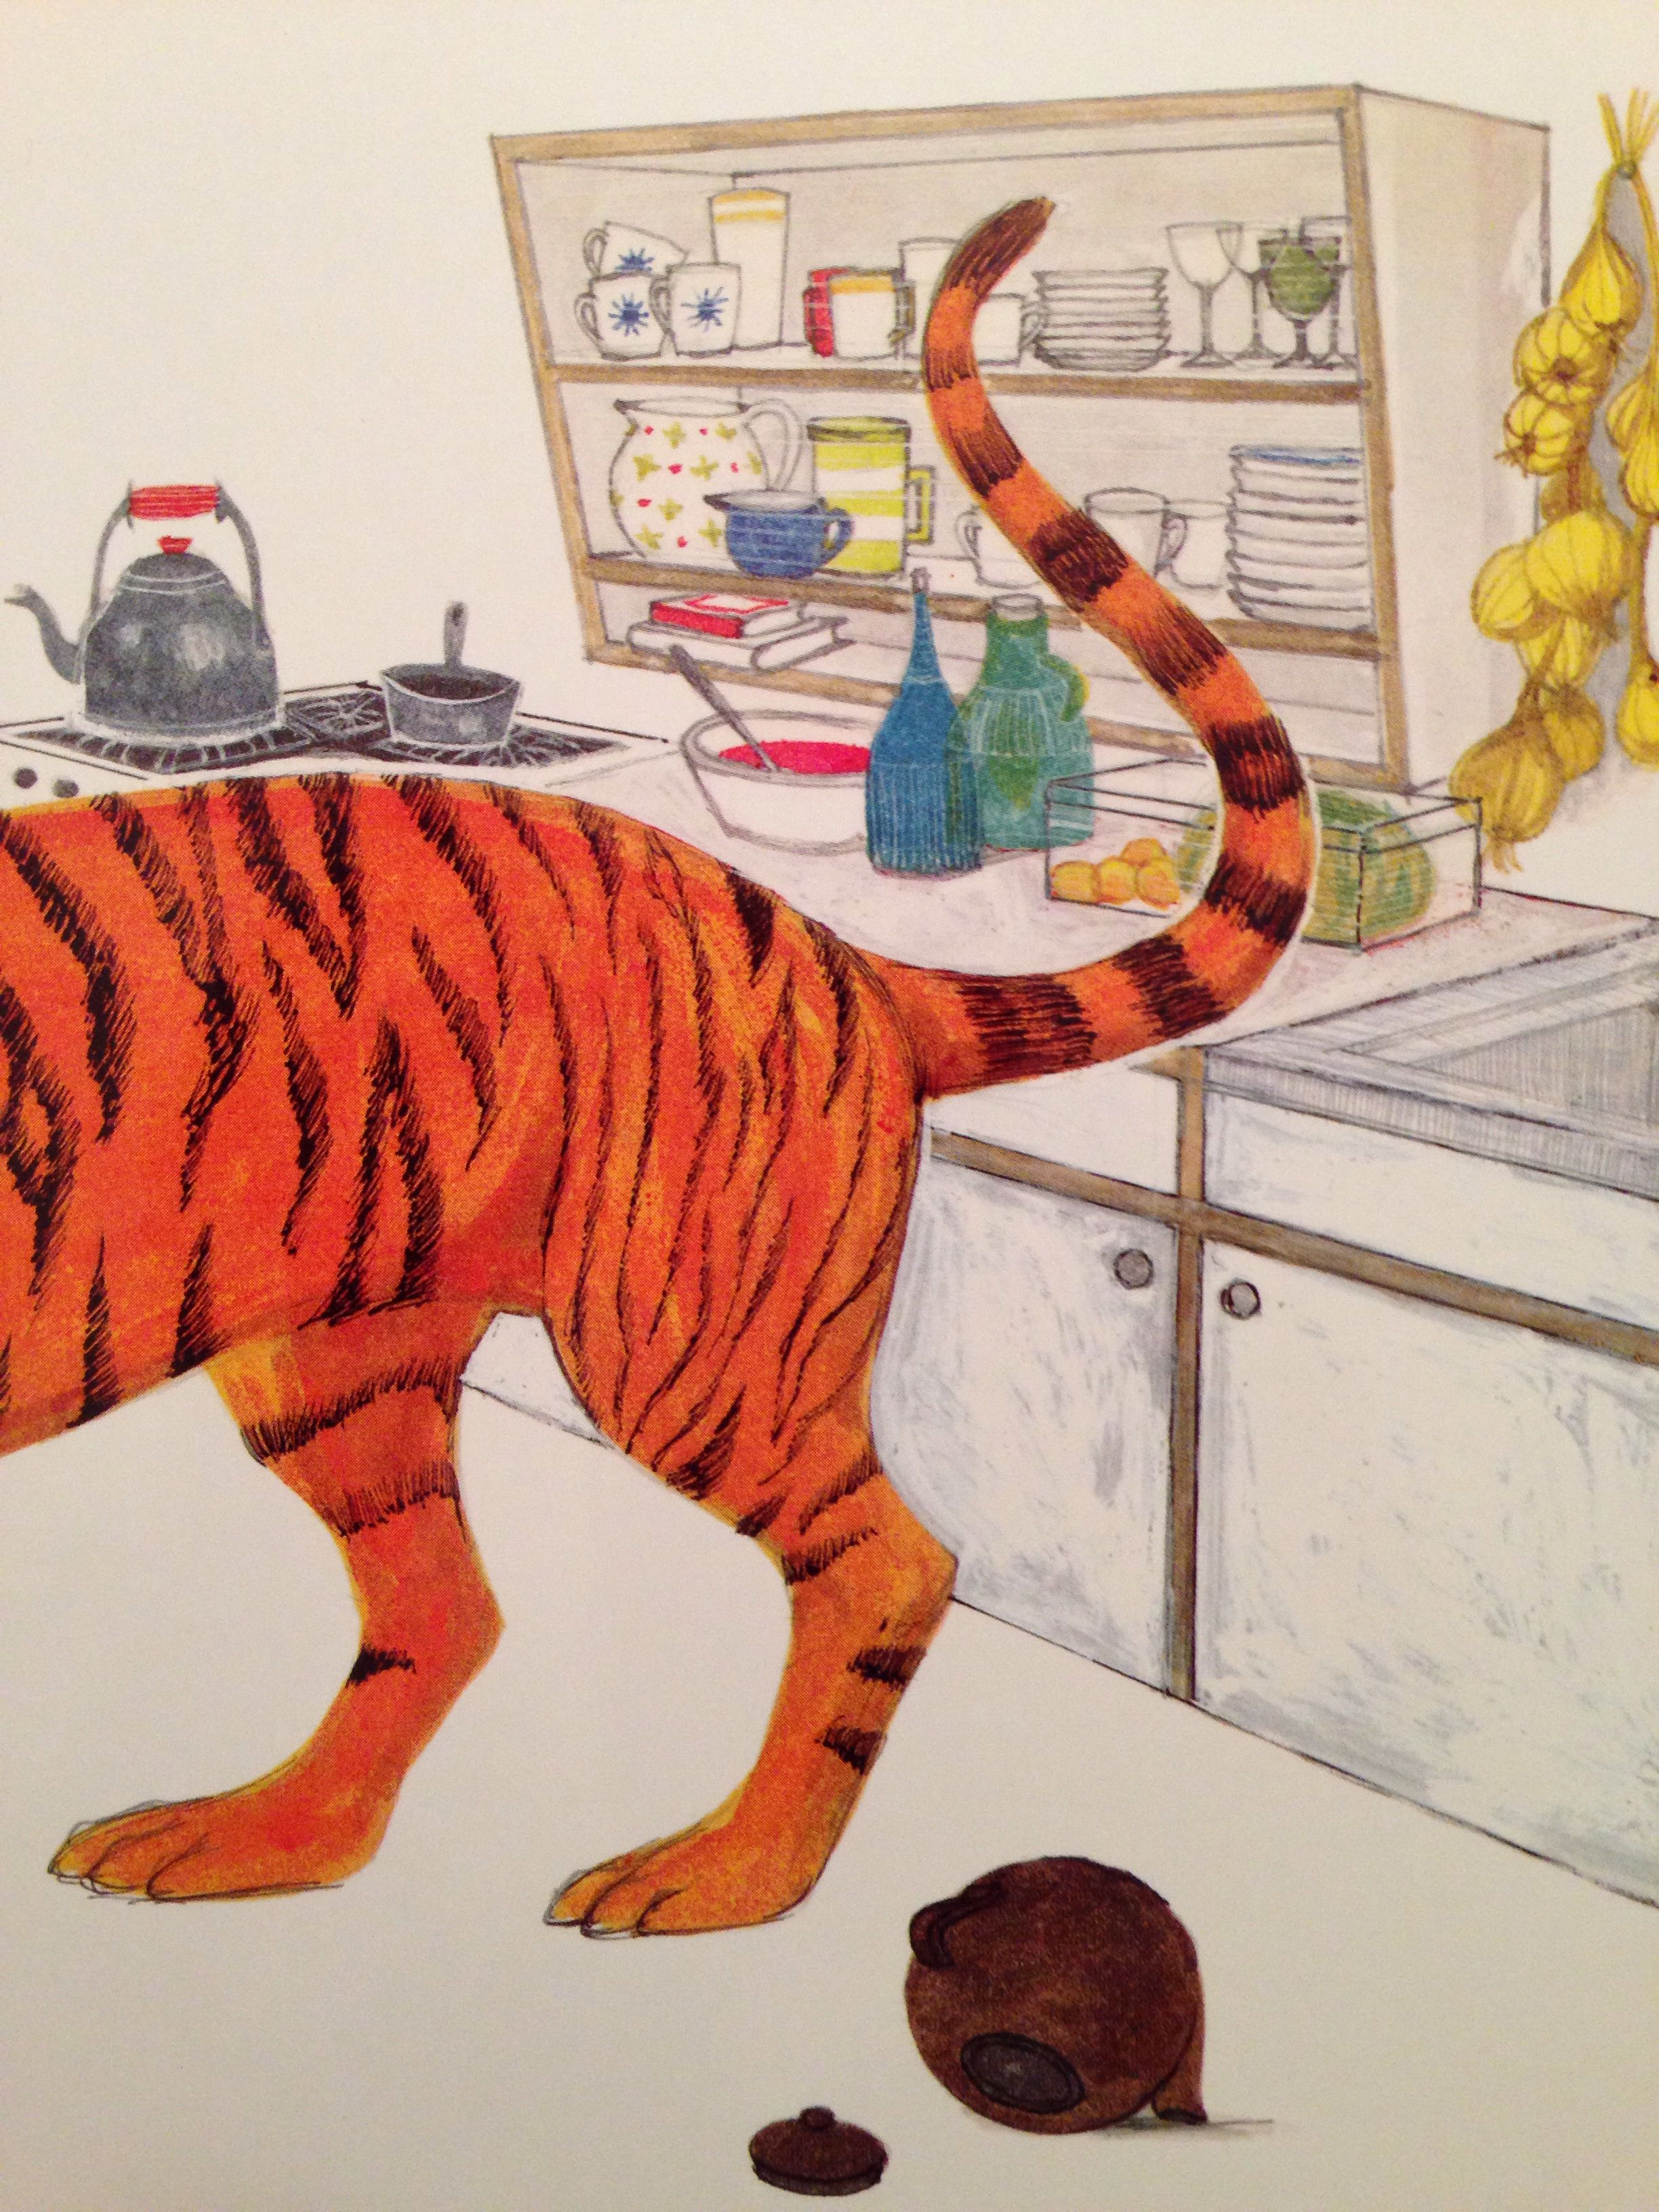 The Tiger Who Came To Tea By Judith Kerr Book Illustration Children S Book Illustration Illustrators